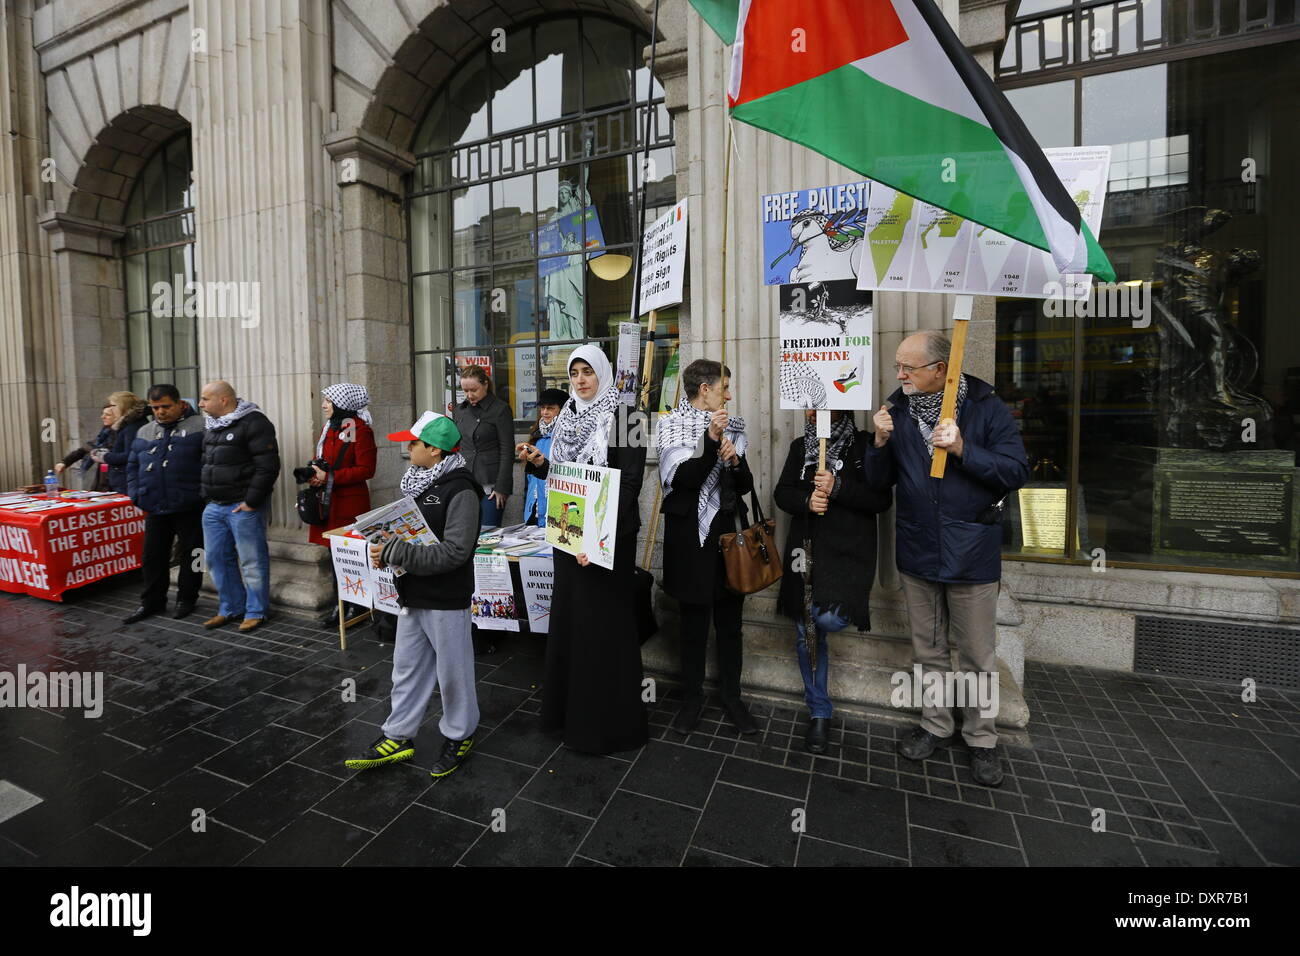 Dublin, Ireland. 29th March 2014. Activists from the Ireland Palestine Solidarity Campaign stand outside the GPO (General Post Office), holding Palestinian flags and posters. The Ireland Palestine Solidarity Campaign (IPSC) protested in Dublin's O'Connell Street on the 38th anniversary of the 1976 land day protest against discrimination of Palestinians by Israel and the expansion of Israeli settlements in Palestinian territory. Credit:  Michael Debets/Alamy Live News - Stock Image